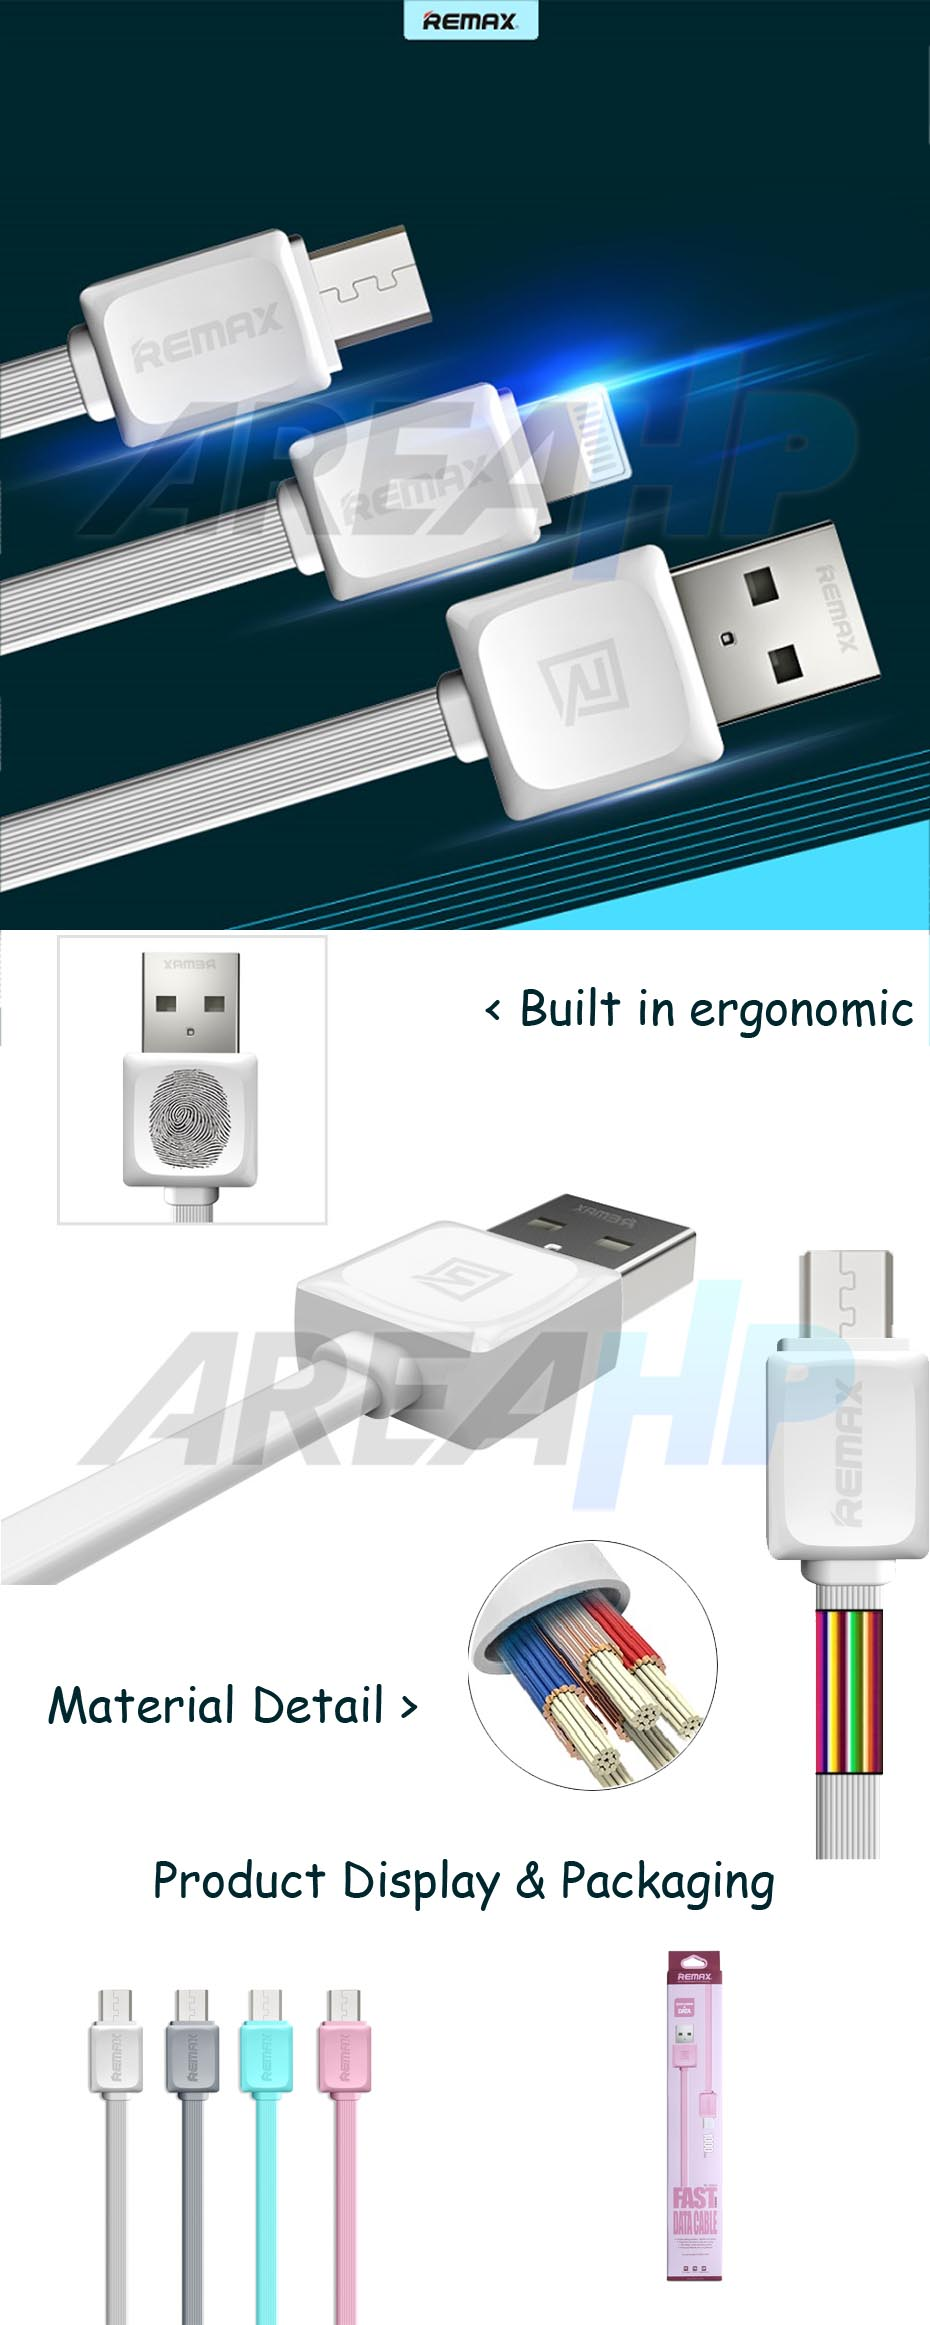 Remax Micro USB Fast Charging Data Cable 1M RC-008M Overview